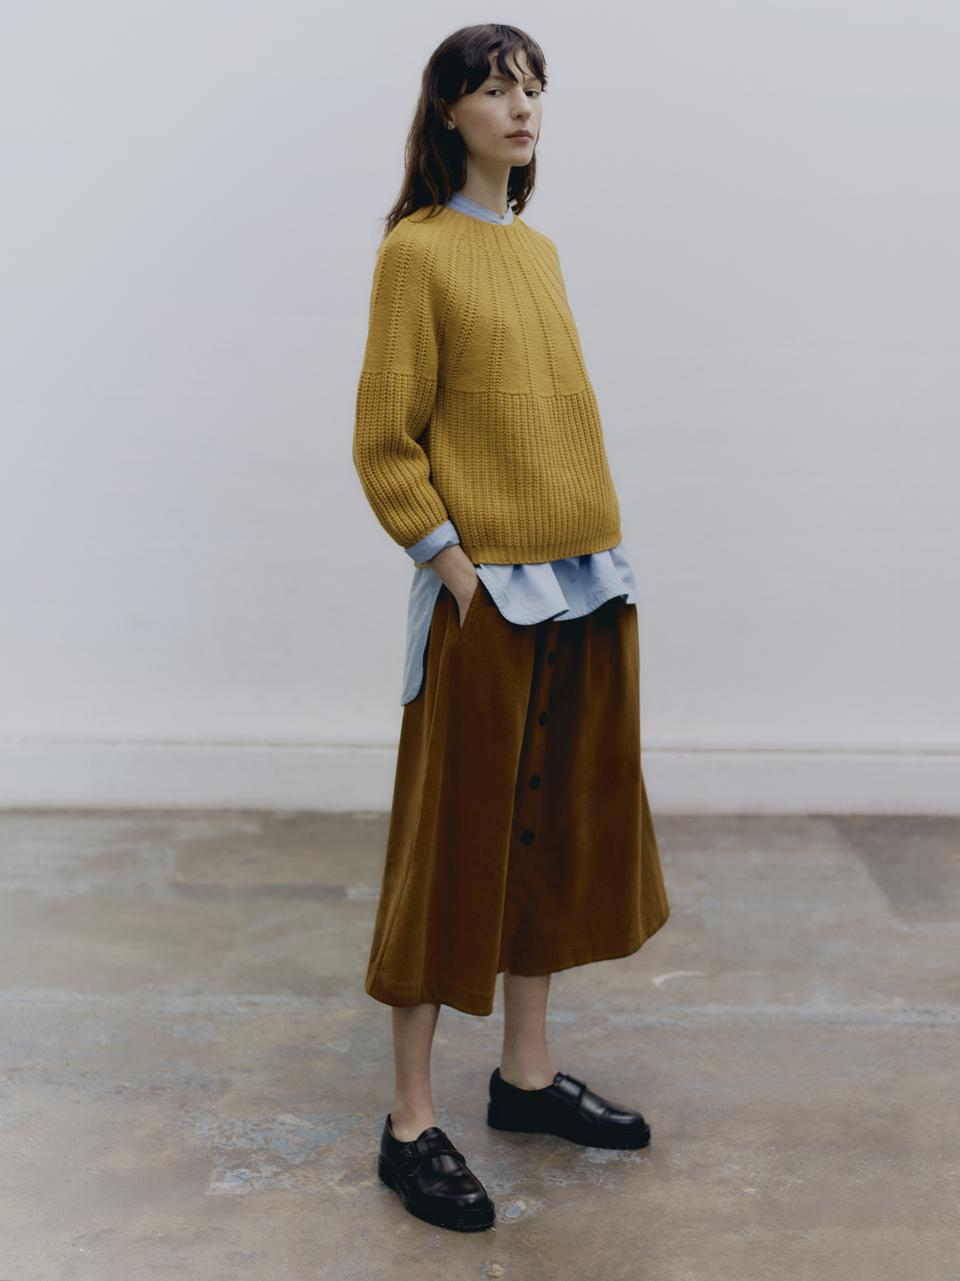 A snap-shot of Toast's A/W looks